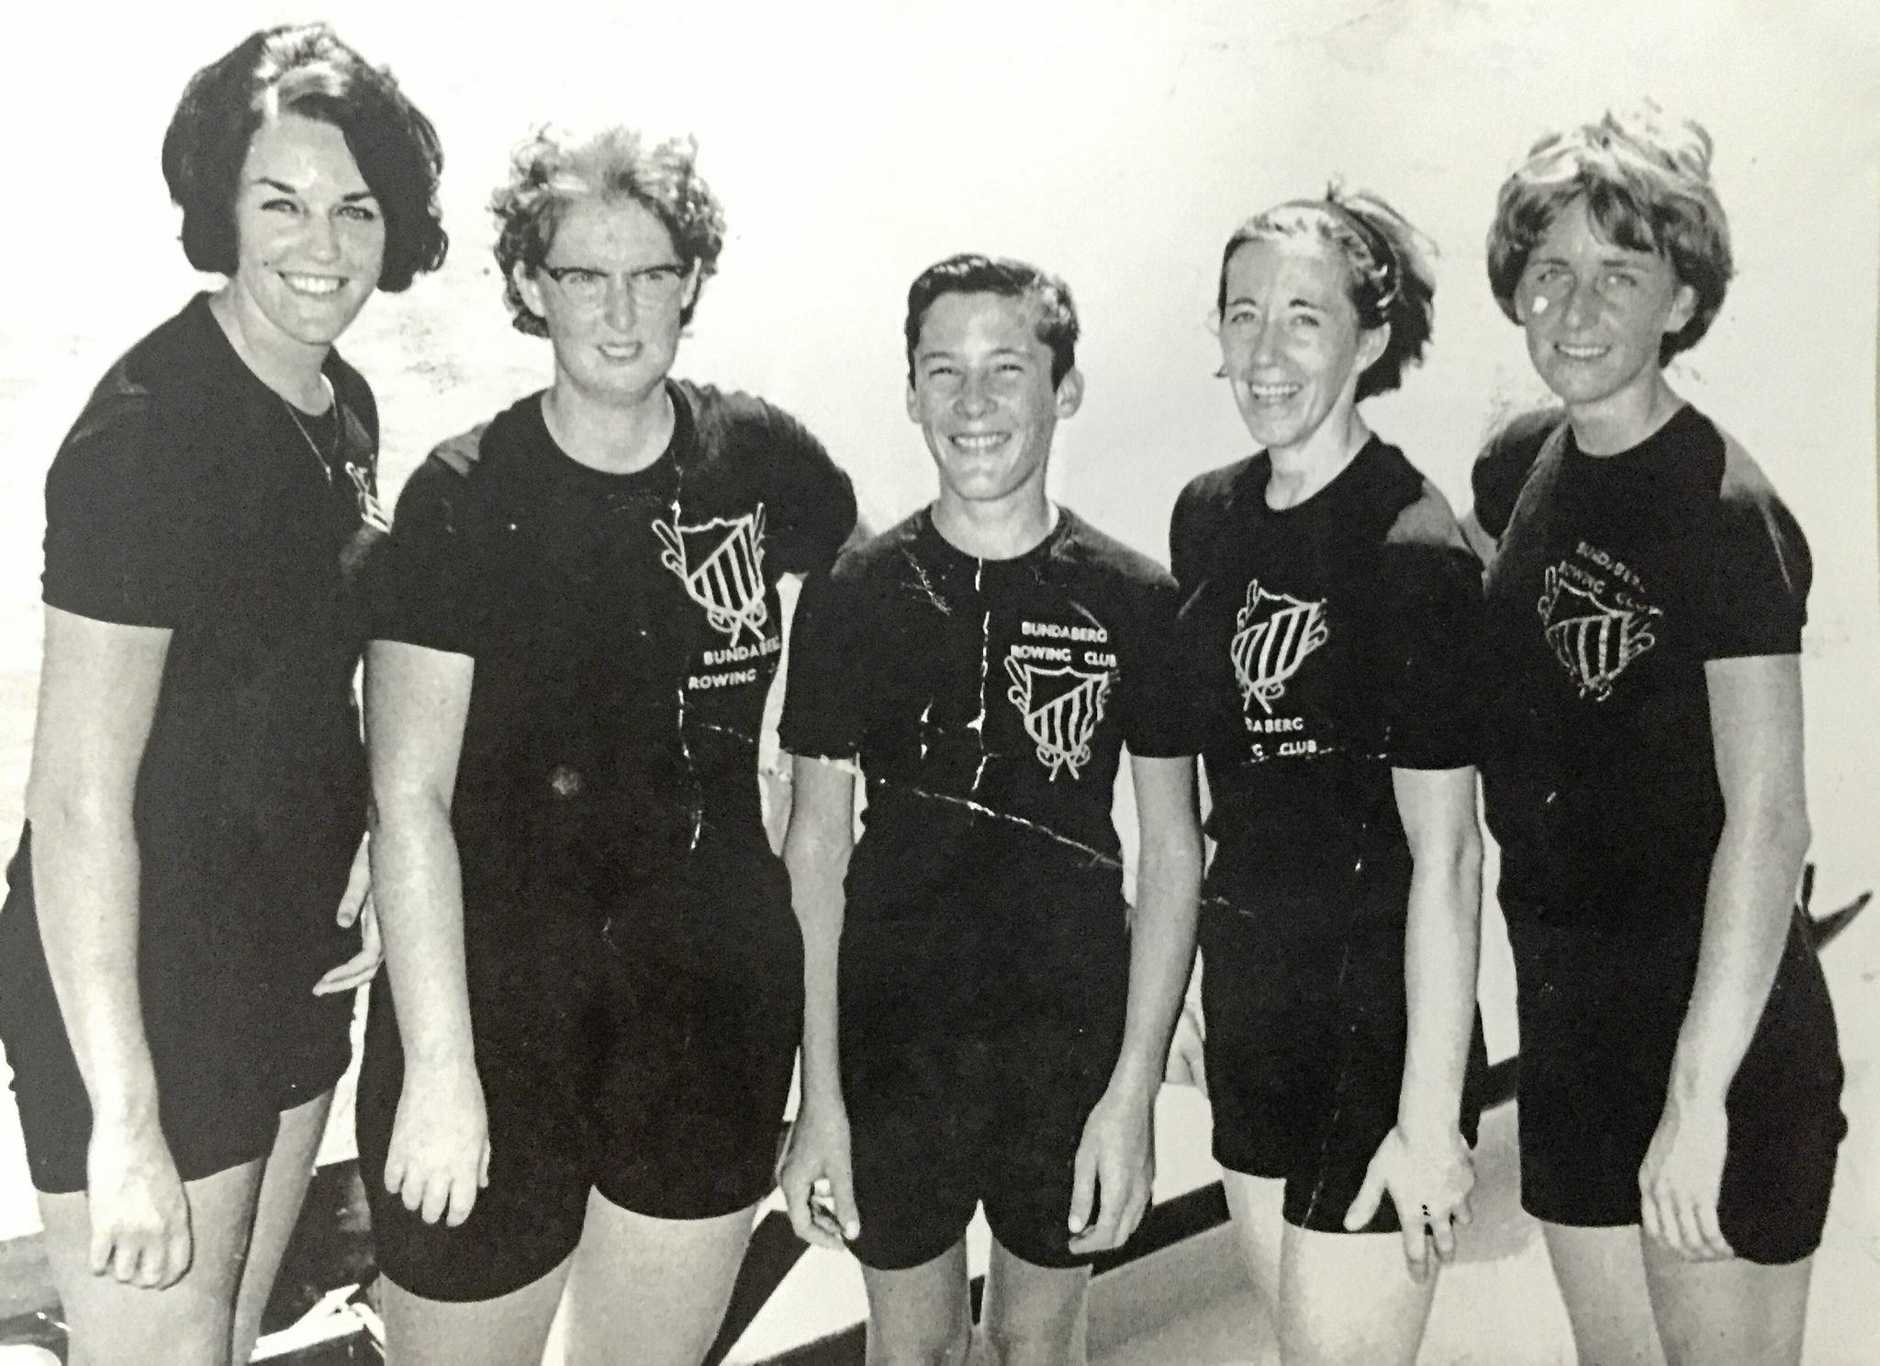 1967: Dianne Royan, Arlene Emerick, Greg Sauer, Rhonda Smith and Jenny Sauer at the Australian Championships in Sydney. Photo Contributed